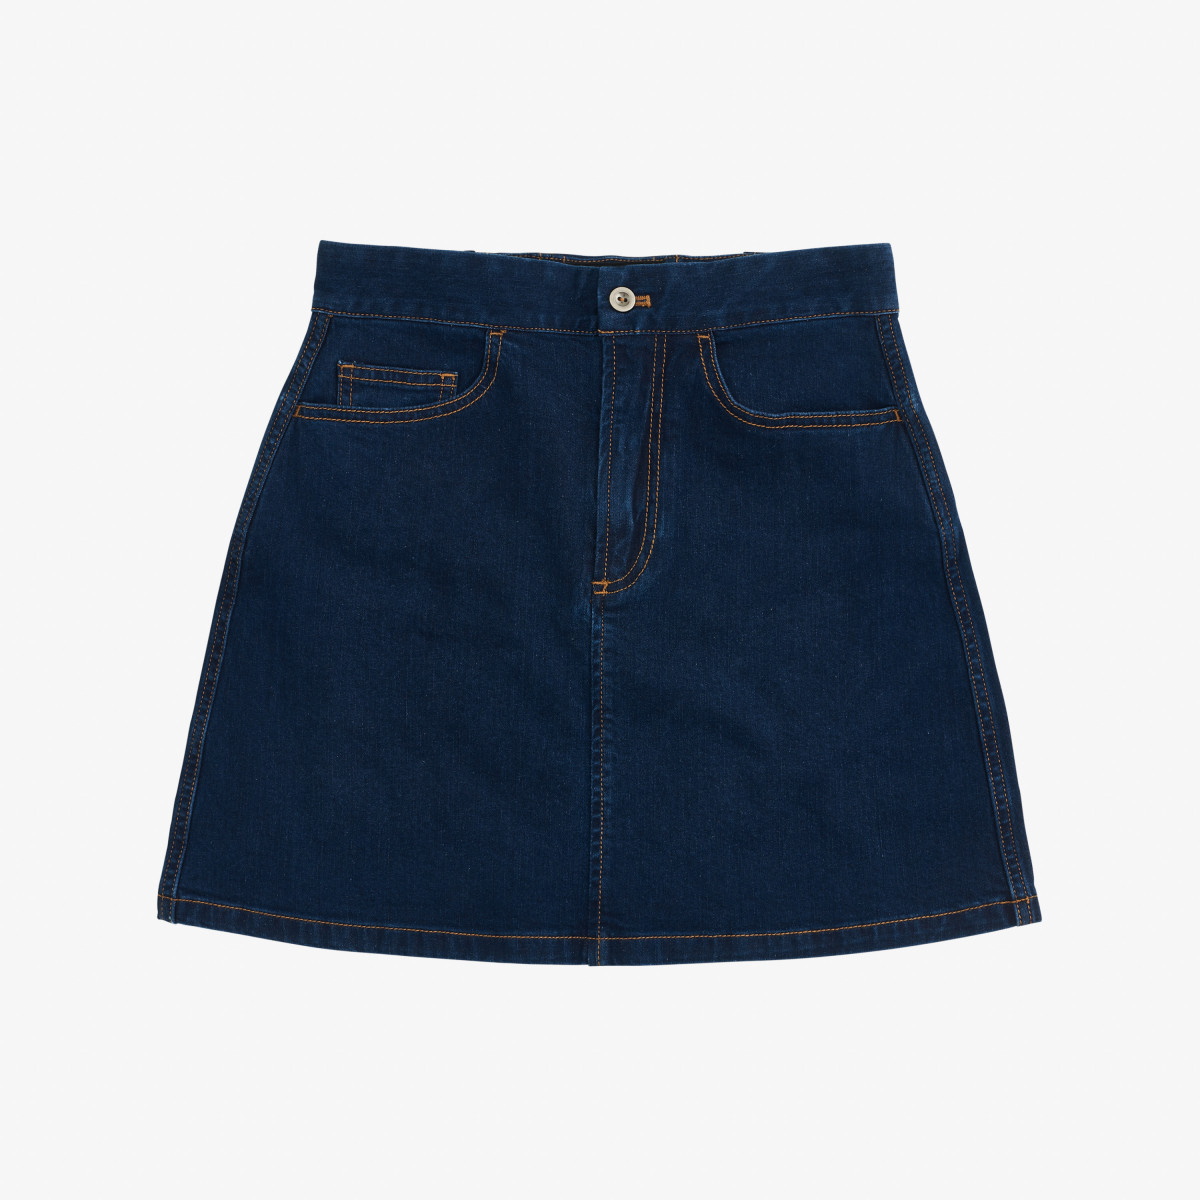 DENIM SKIRT NAVY BLUE